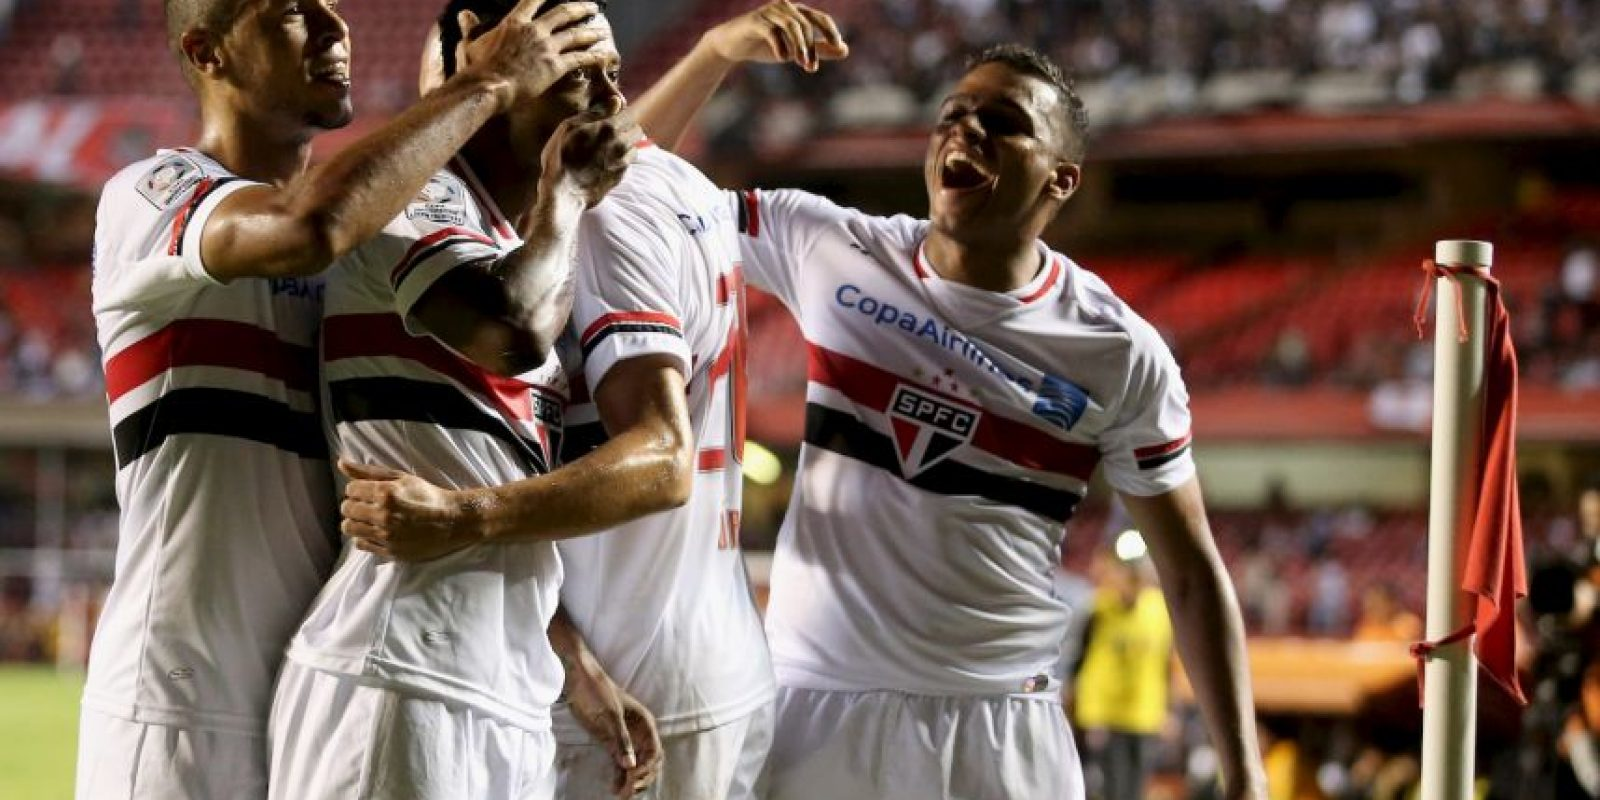 Sao Paulo 2-0 Corinthians Foto: Getty Images